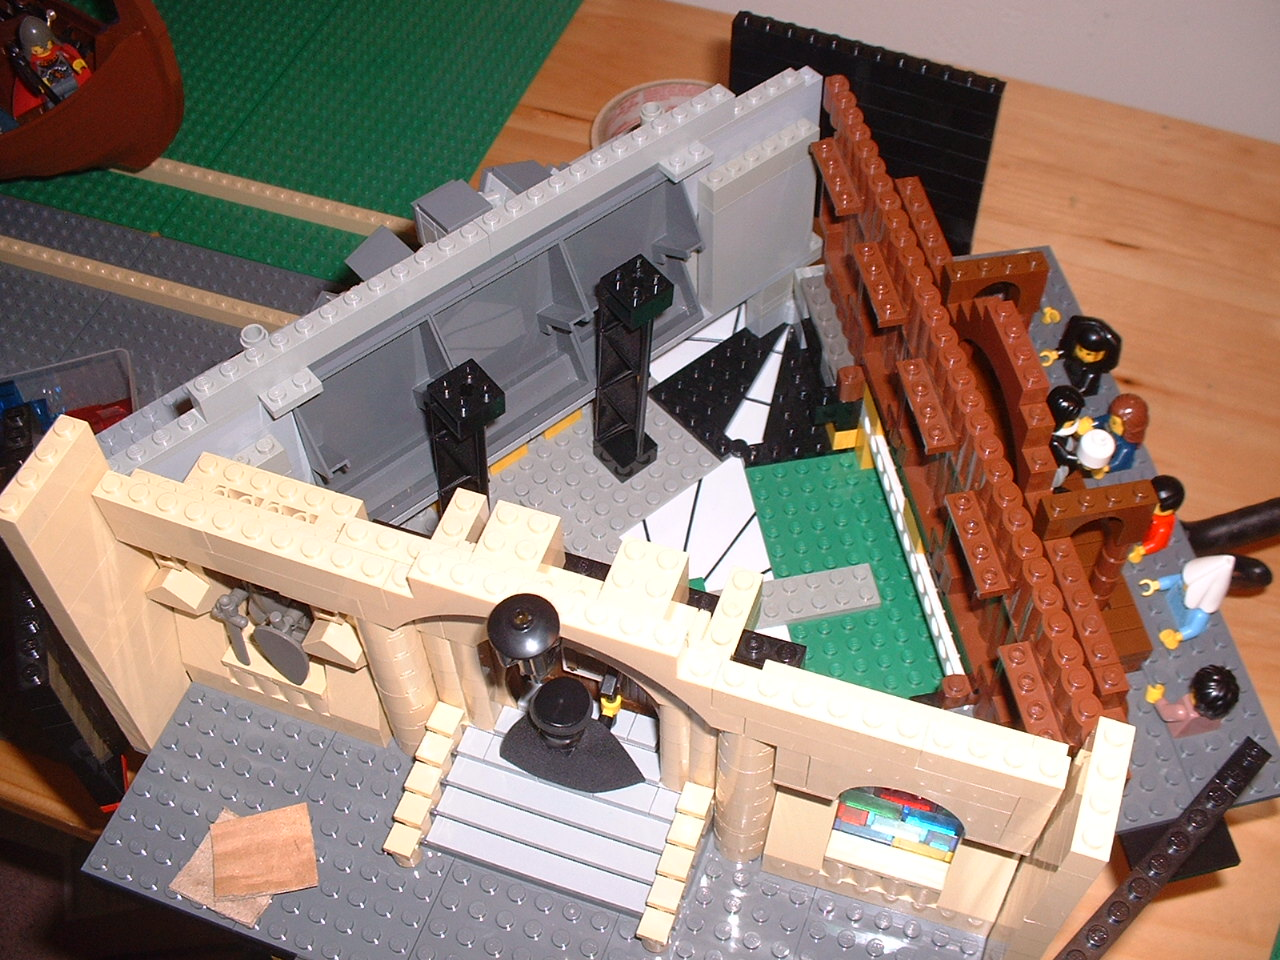 The sequence of Da Vinci, martin luther and shakespeare was built as a single set, animated on top of a turntable.